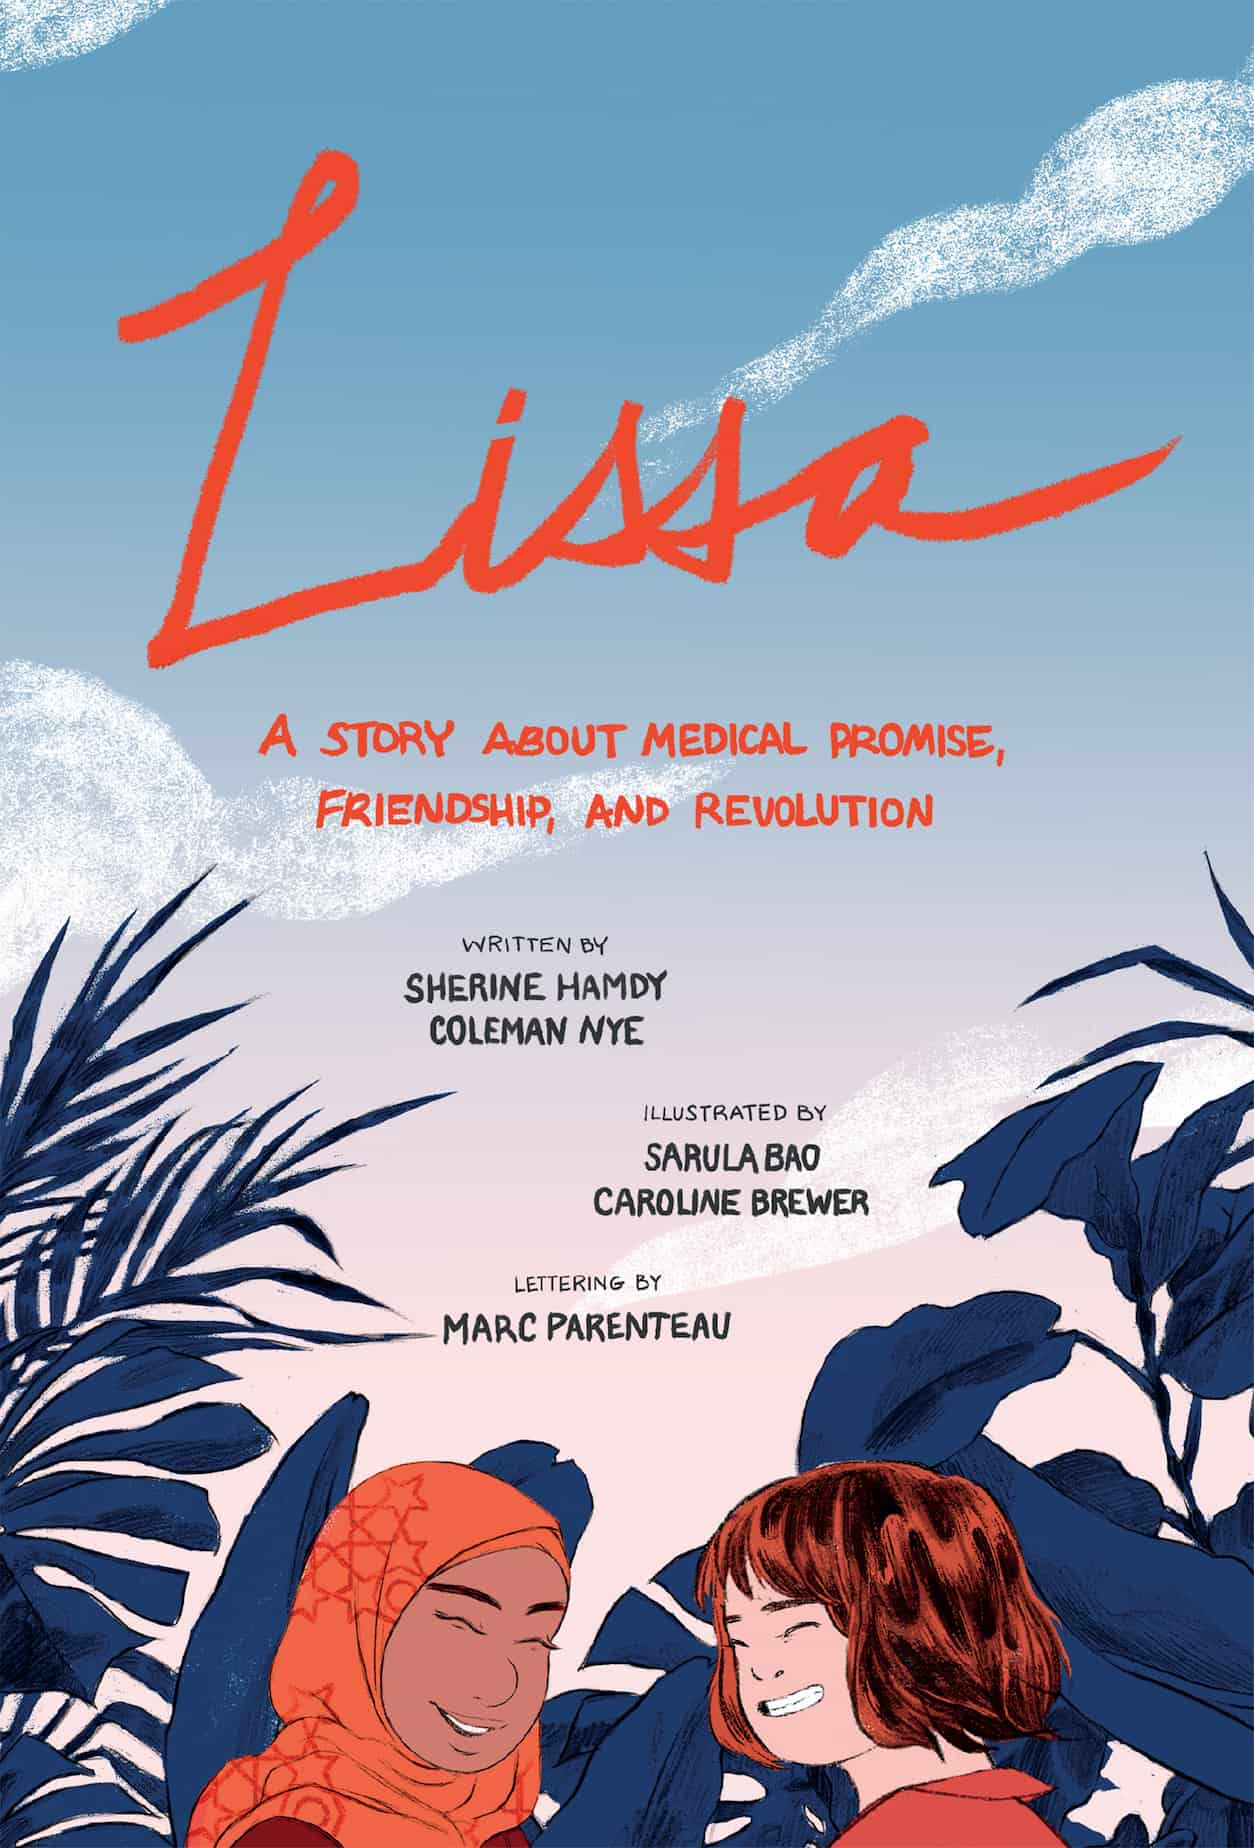 Lissa: A Story About Medical Promise, Friendship, and